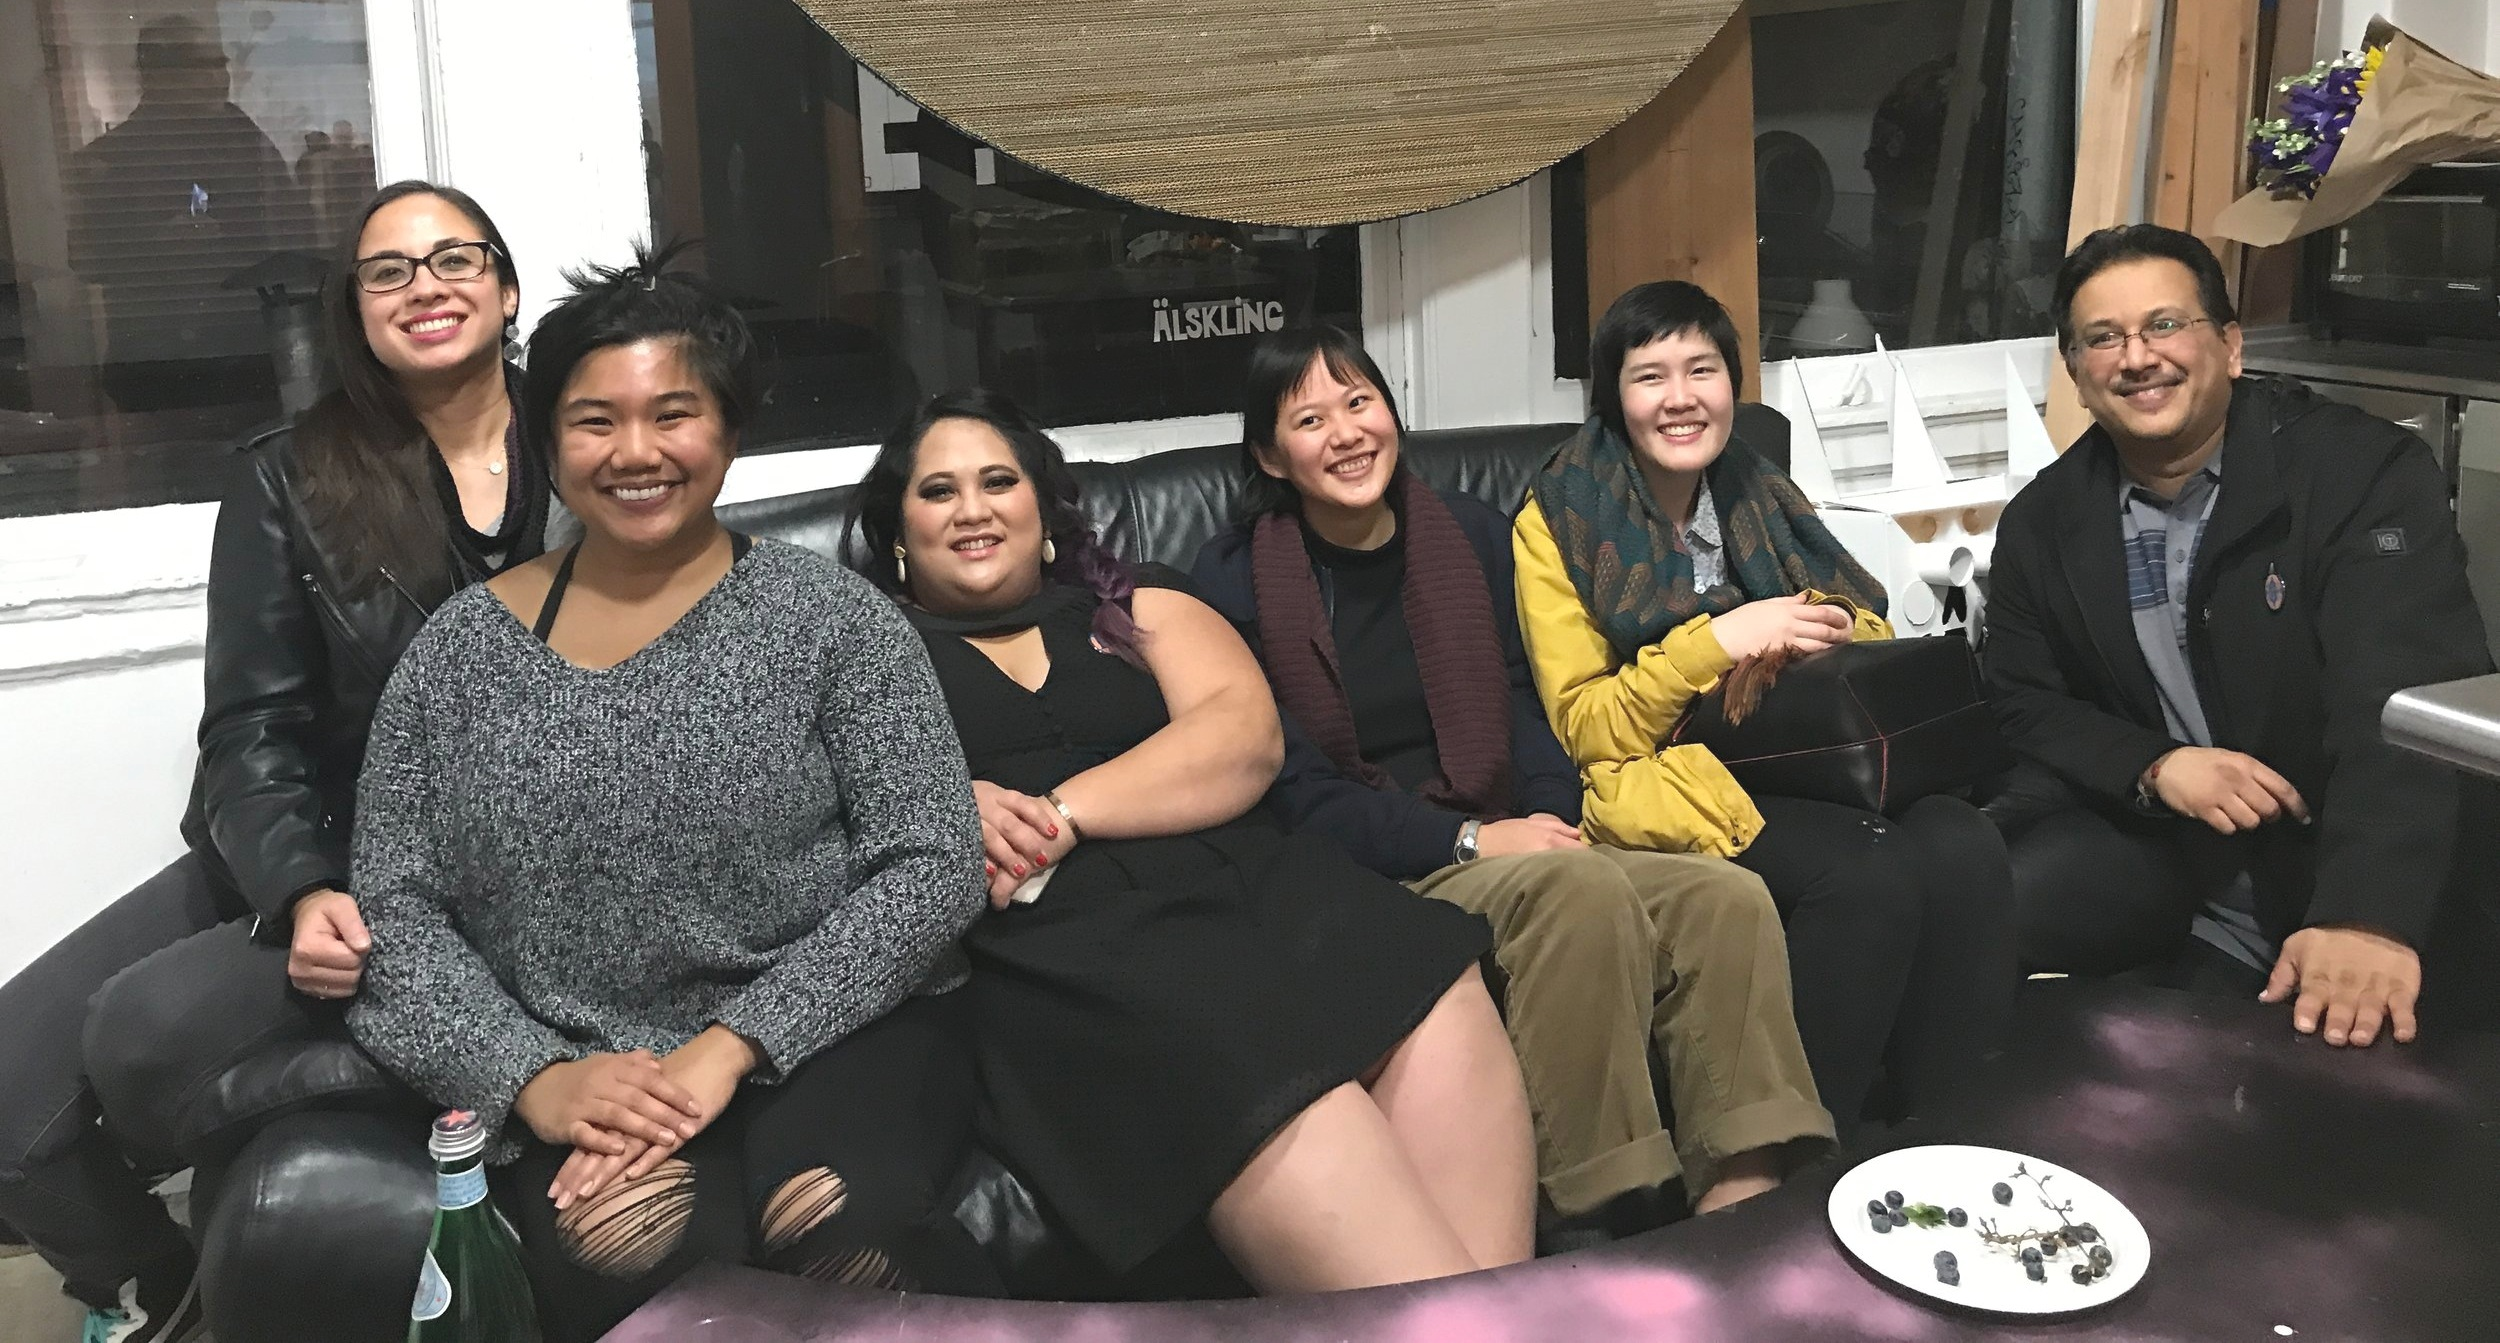 """Jenna Peng with the API Cultural Center team - Melanie Elvena, Diana Li, Vinay Patel, Dara Del Rosario of SOMArts Cultural Center, and Paloma of PapaLoDown Agency, at Nancy Hom's exhibit """"Passionate Engagement""""."""